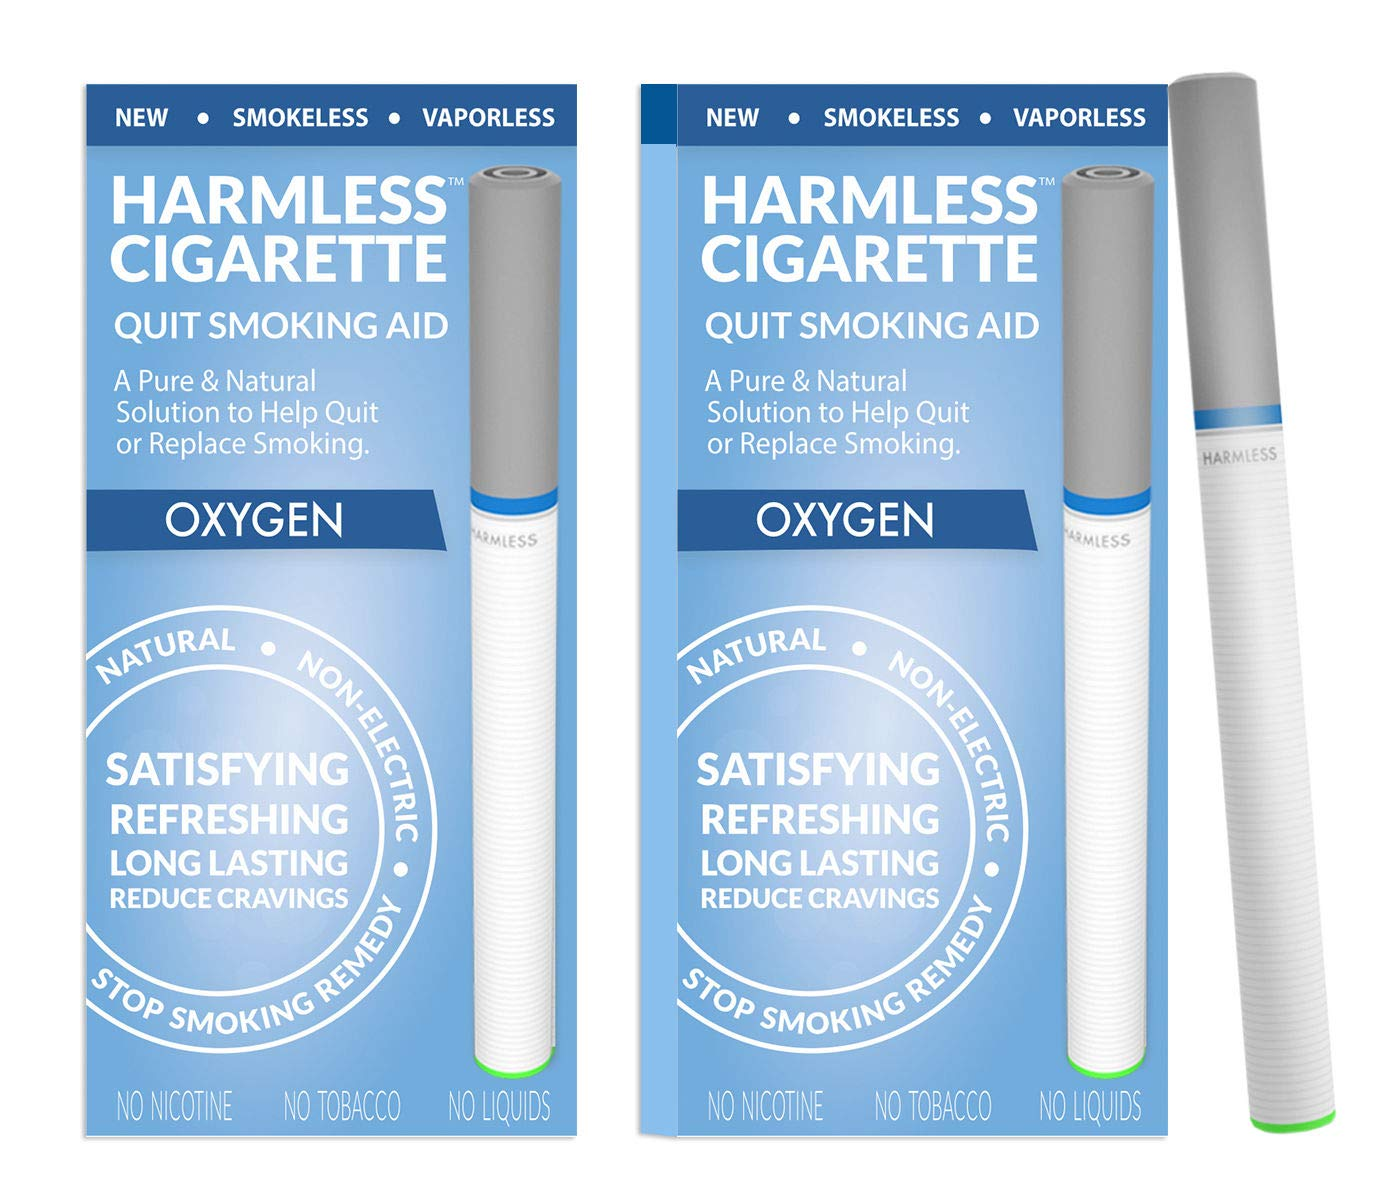 New/Harmless Stop Smoking Aid/Quit Smoking Kit/Therapeutic Quit Smoking Aid to Help Reduce Cravings/Satisfying & Effective Stop Smoking Remedy (Oxygen, 2 Pack)